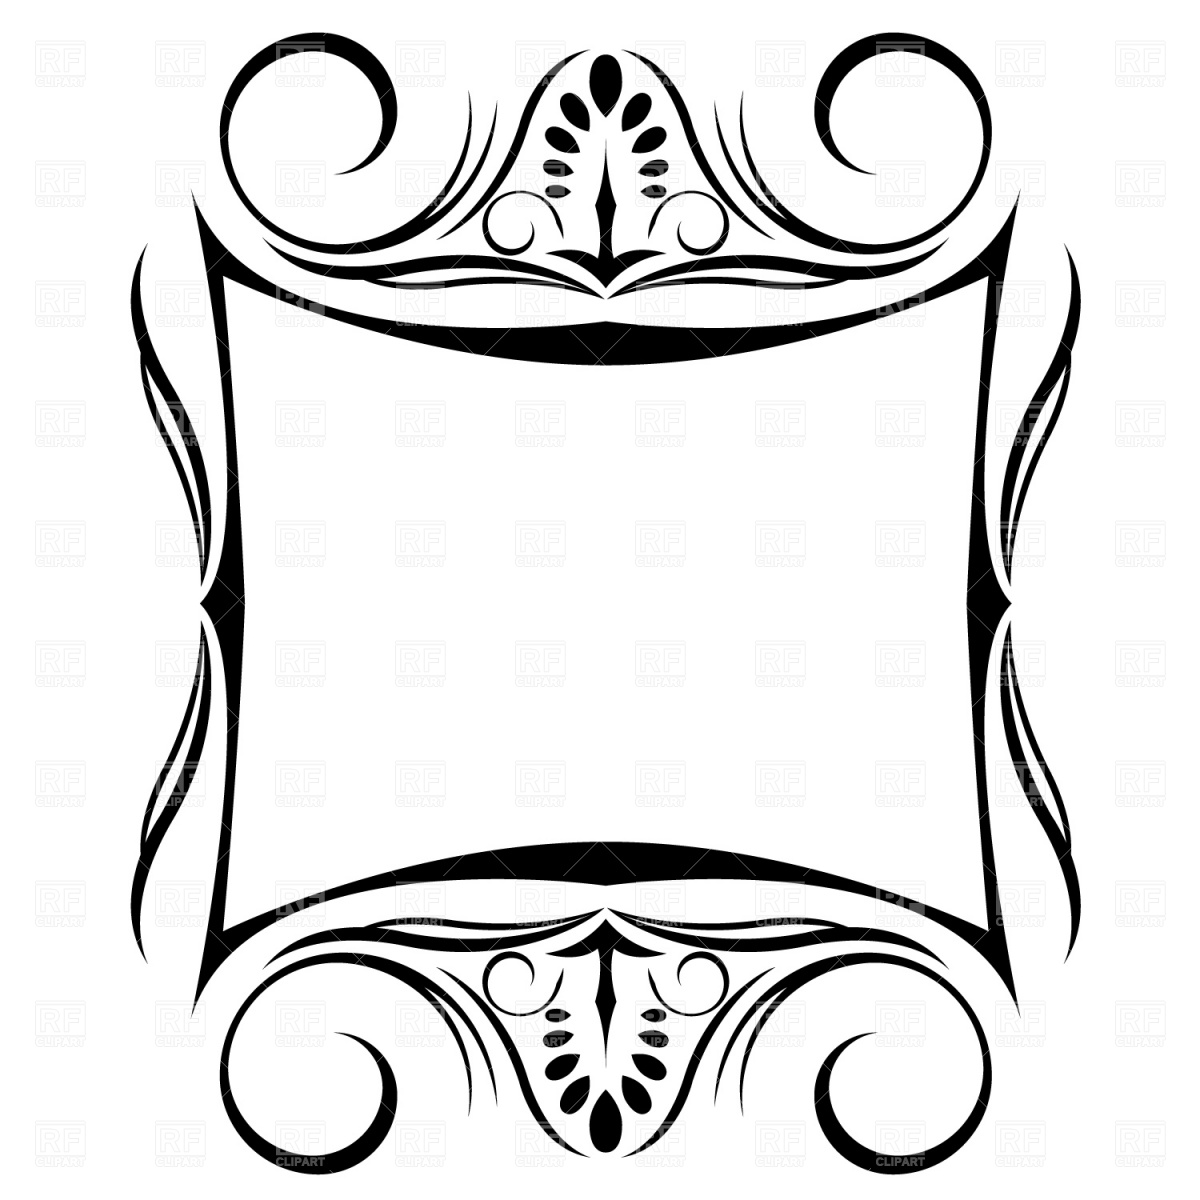 Decorative Shapes Clipart - Clipart Suggest